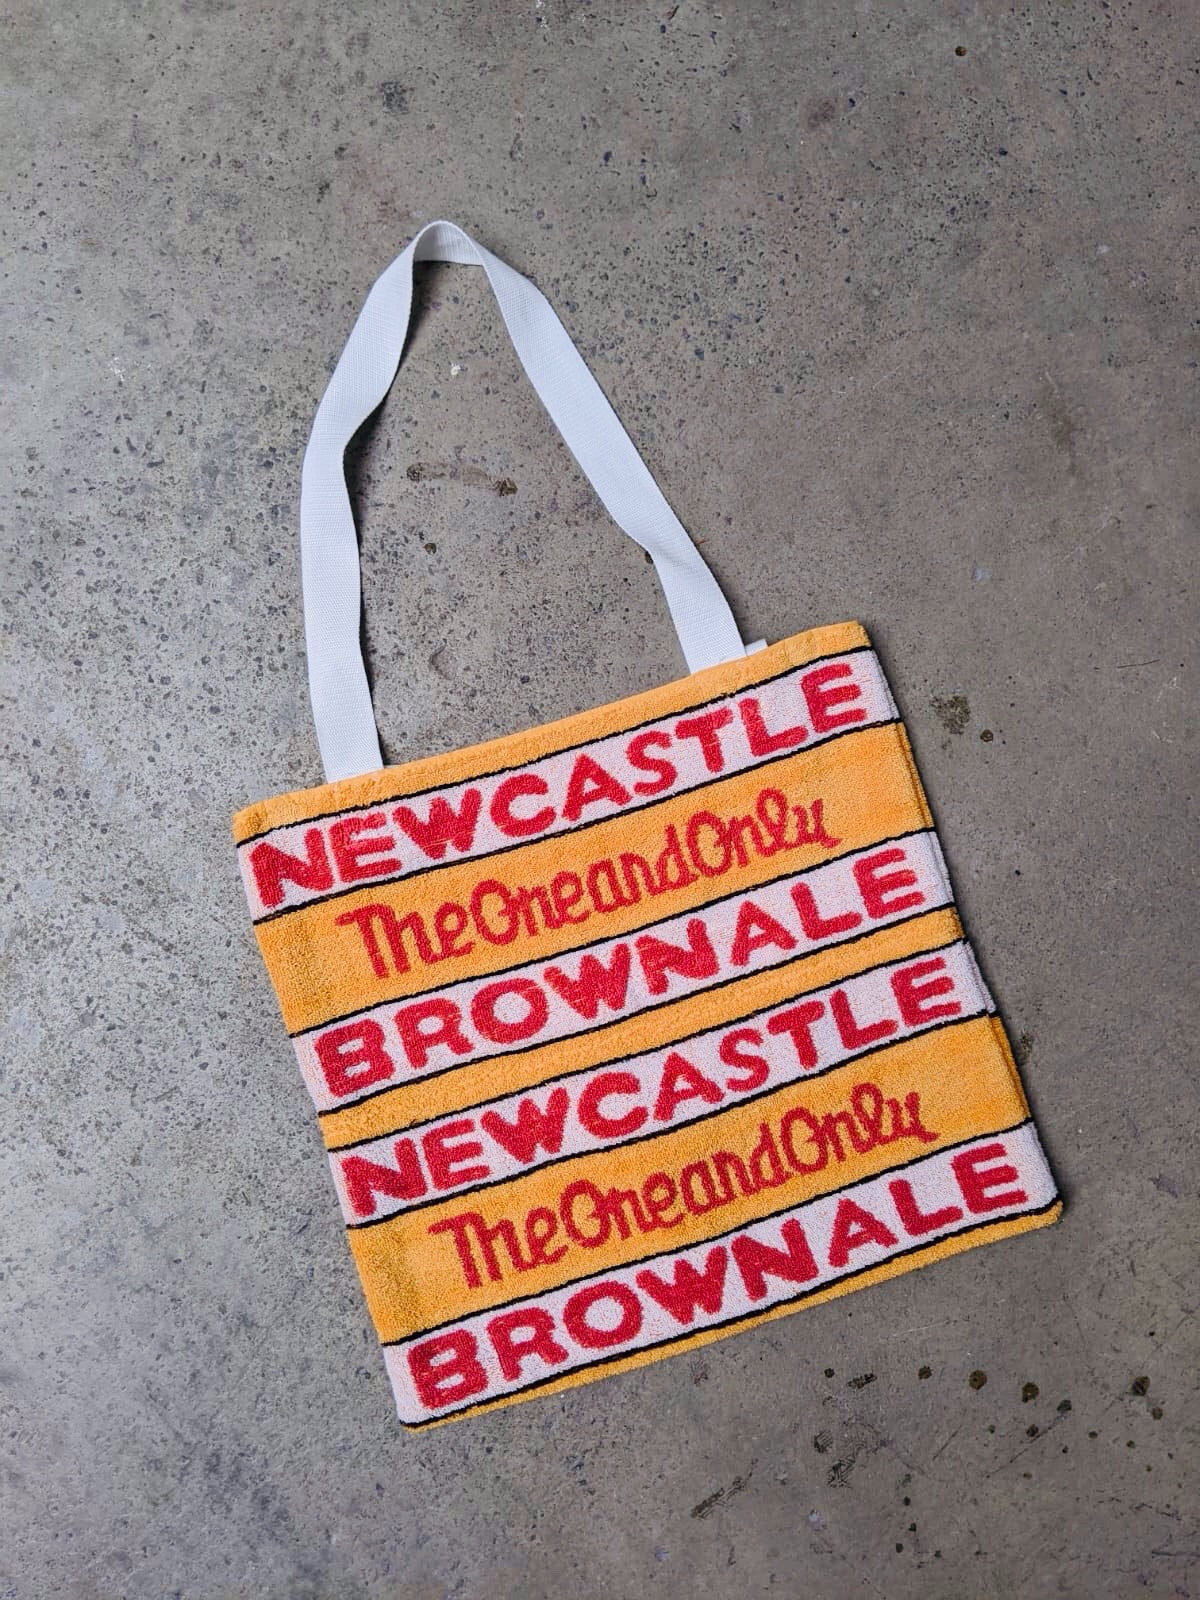 Newcastle Beer Towel Bag